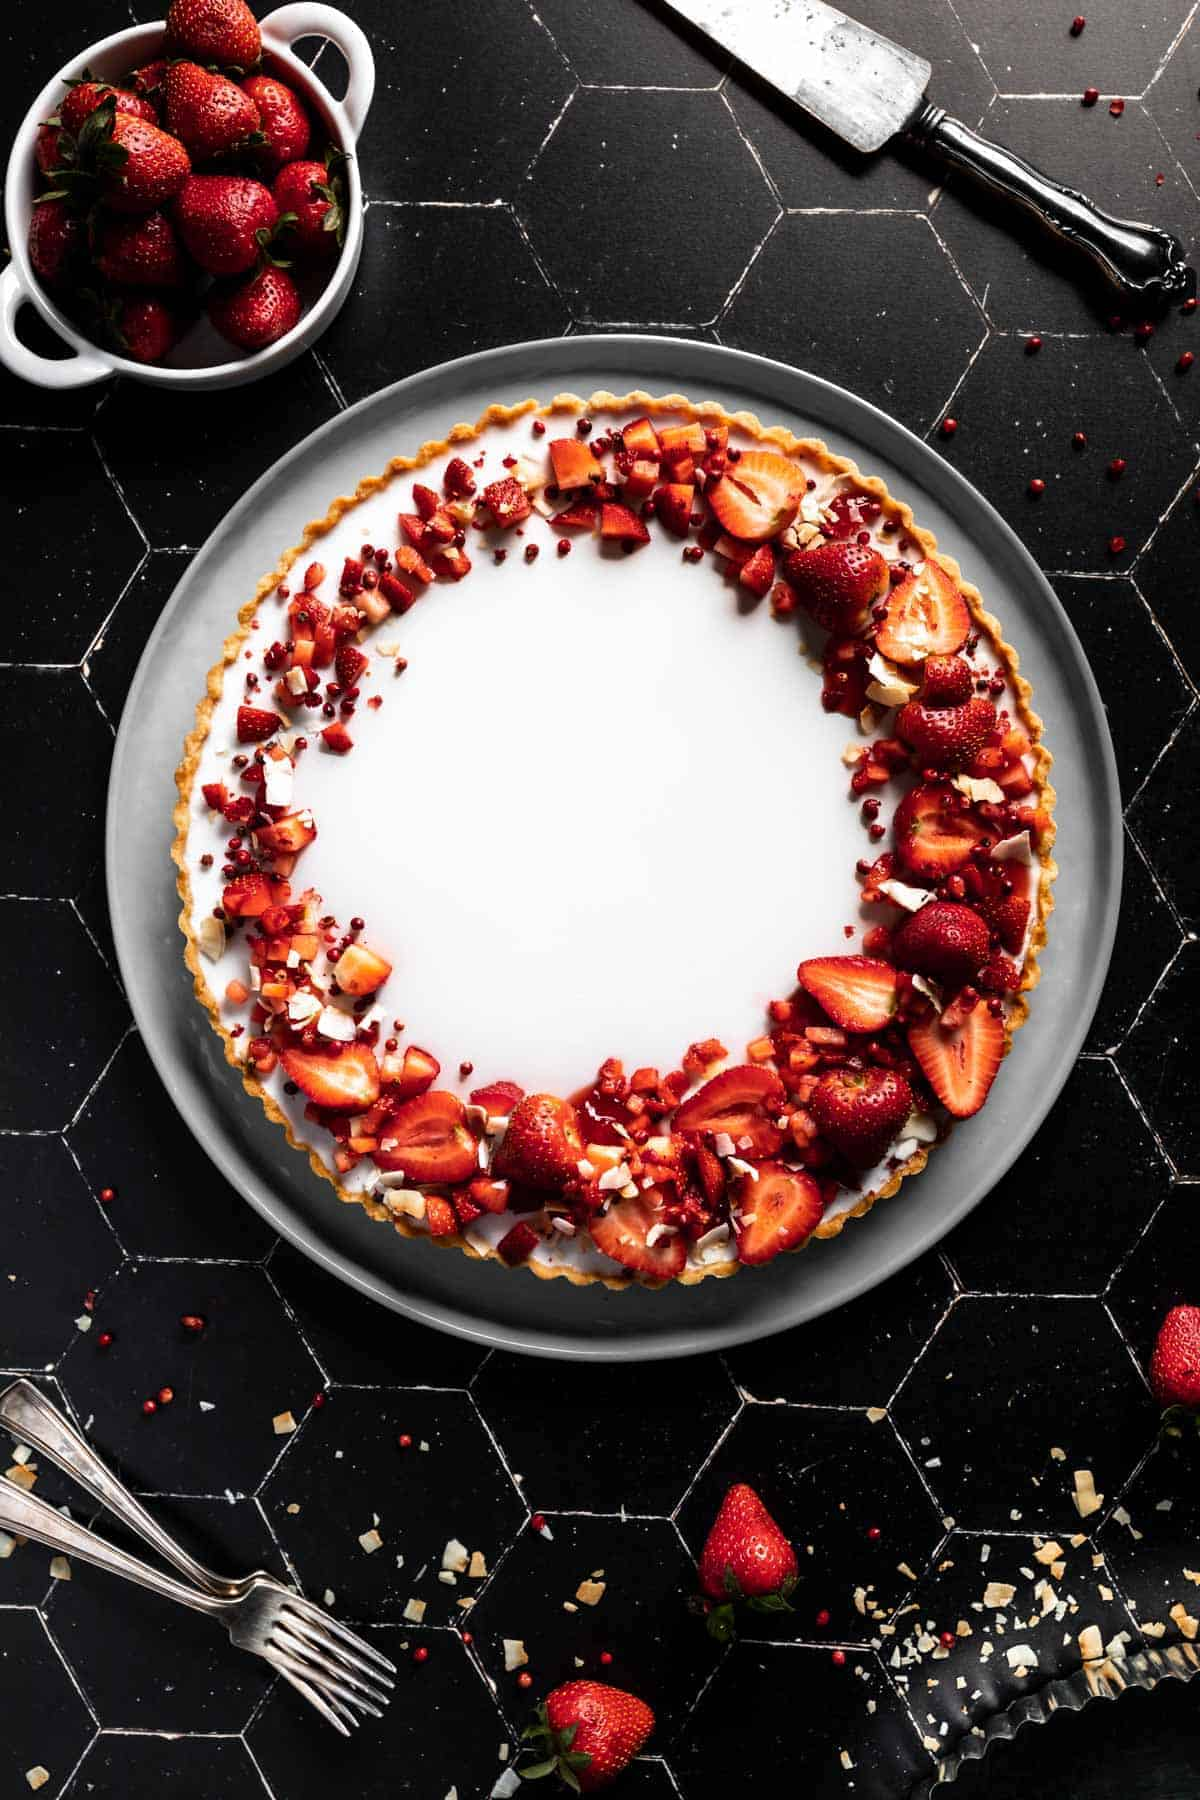 overhead shot of a Coconut Tart with a crescent design of Strawberries. Next to the Panna Cotta tart is flakes of toasted coconut, a bowl of strawberries, a serving utensil and two forks